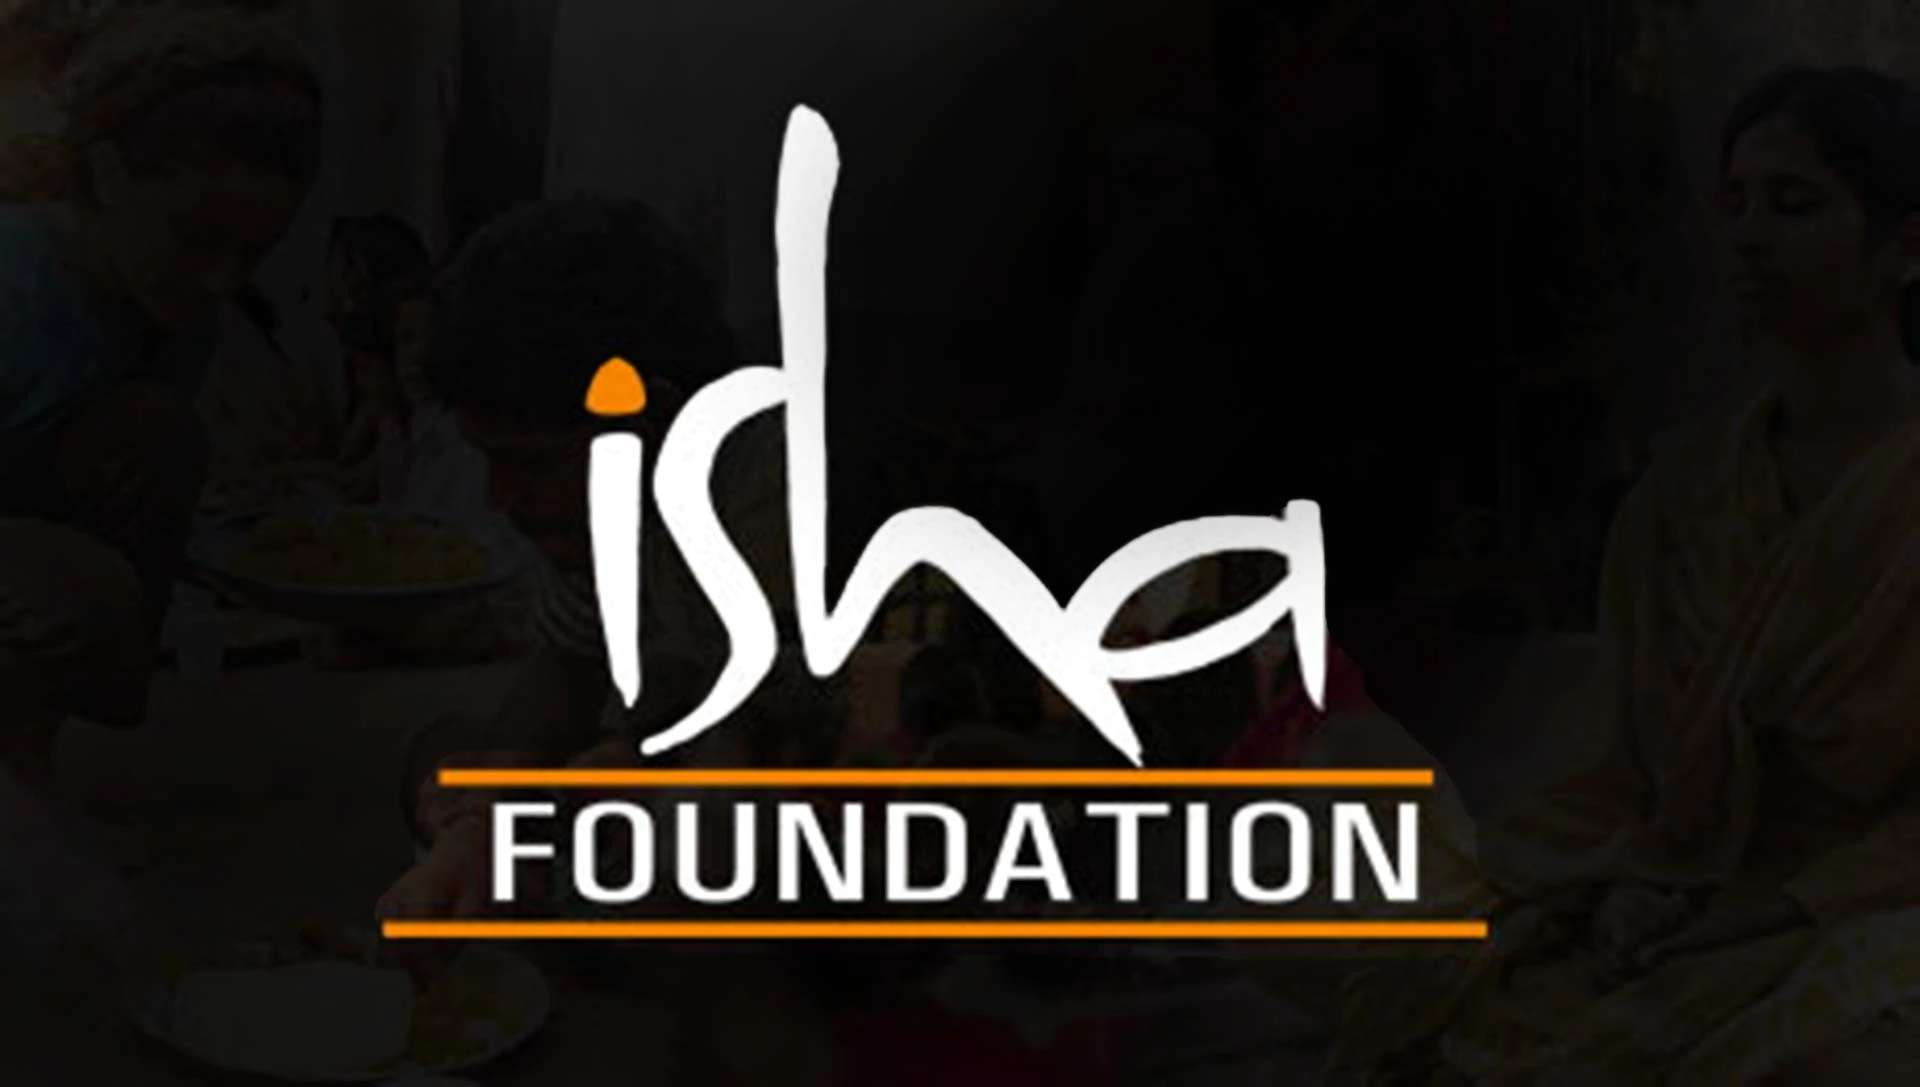 All Buildings at Isha Foundation are Legal